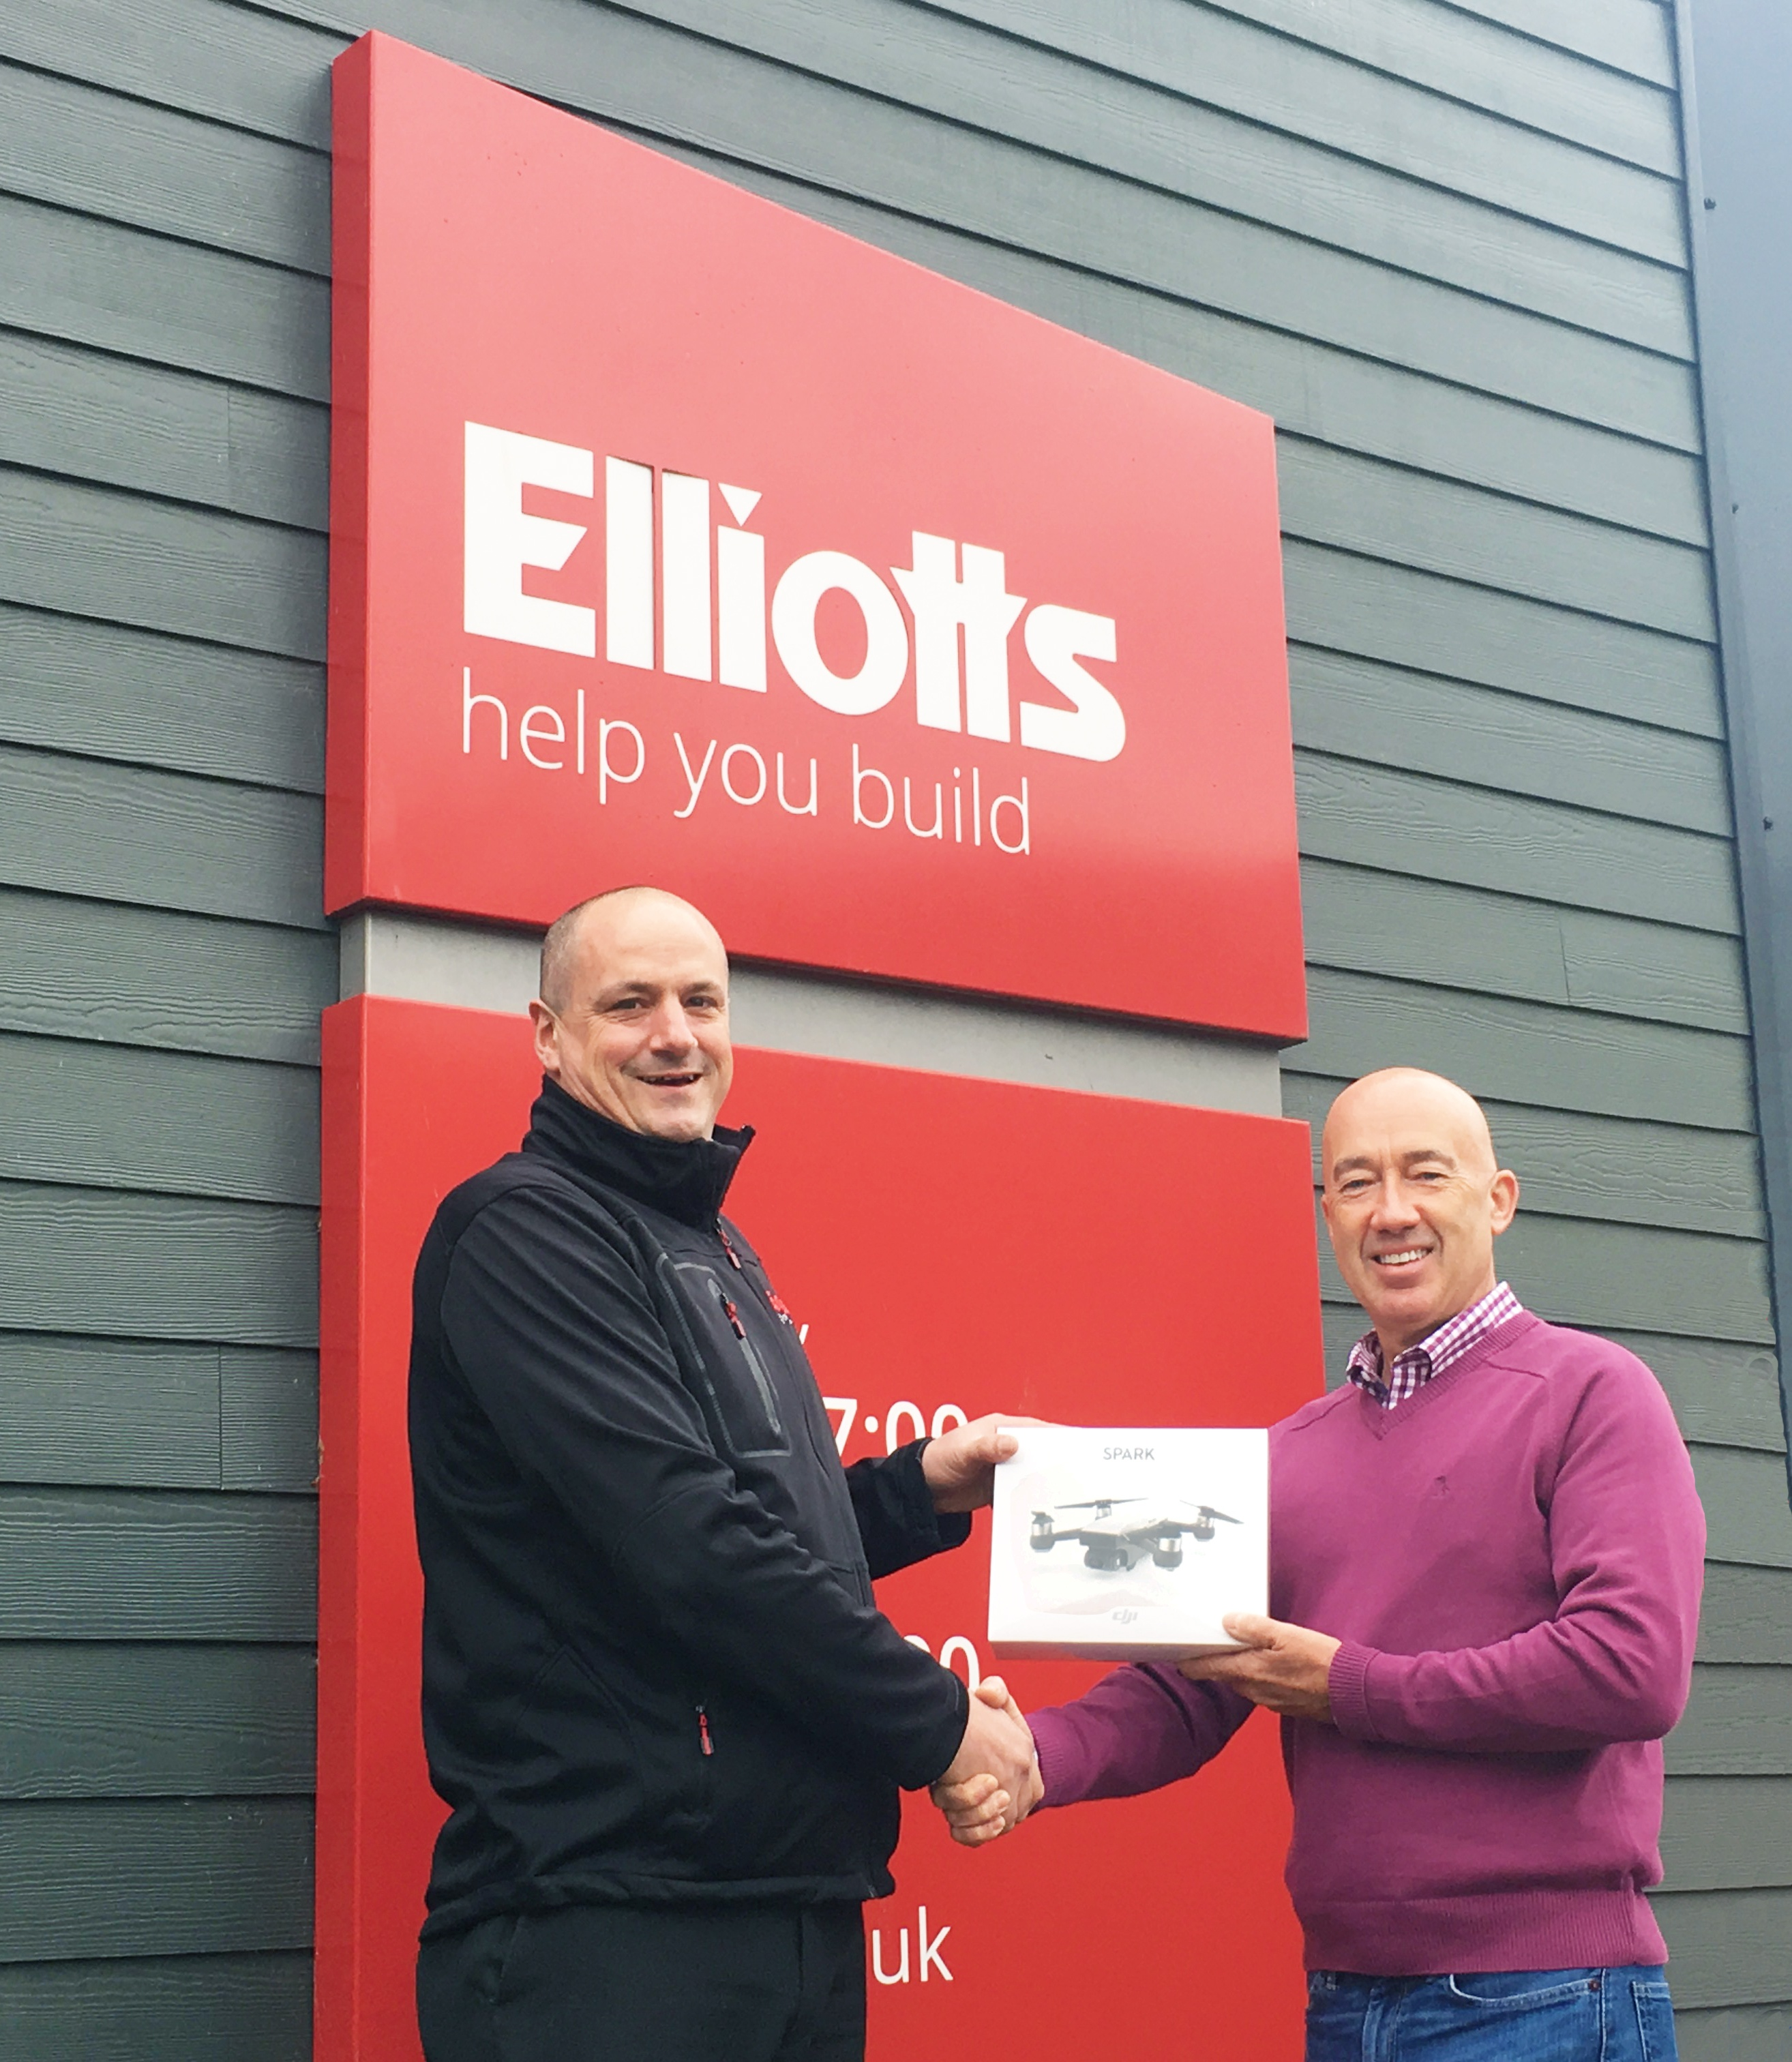 Paul Humphreys receiving his drone from Steve Thomas